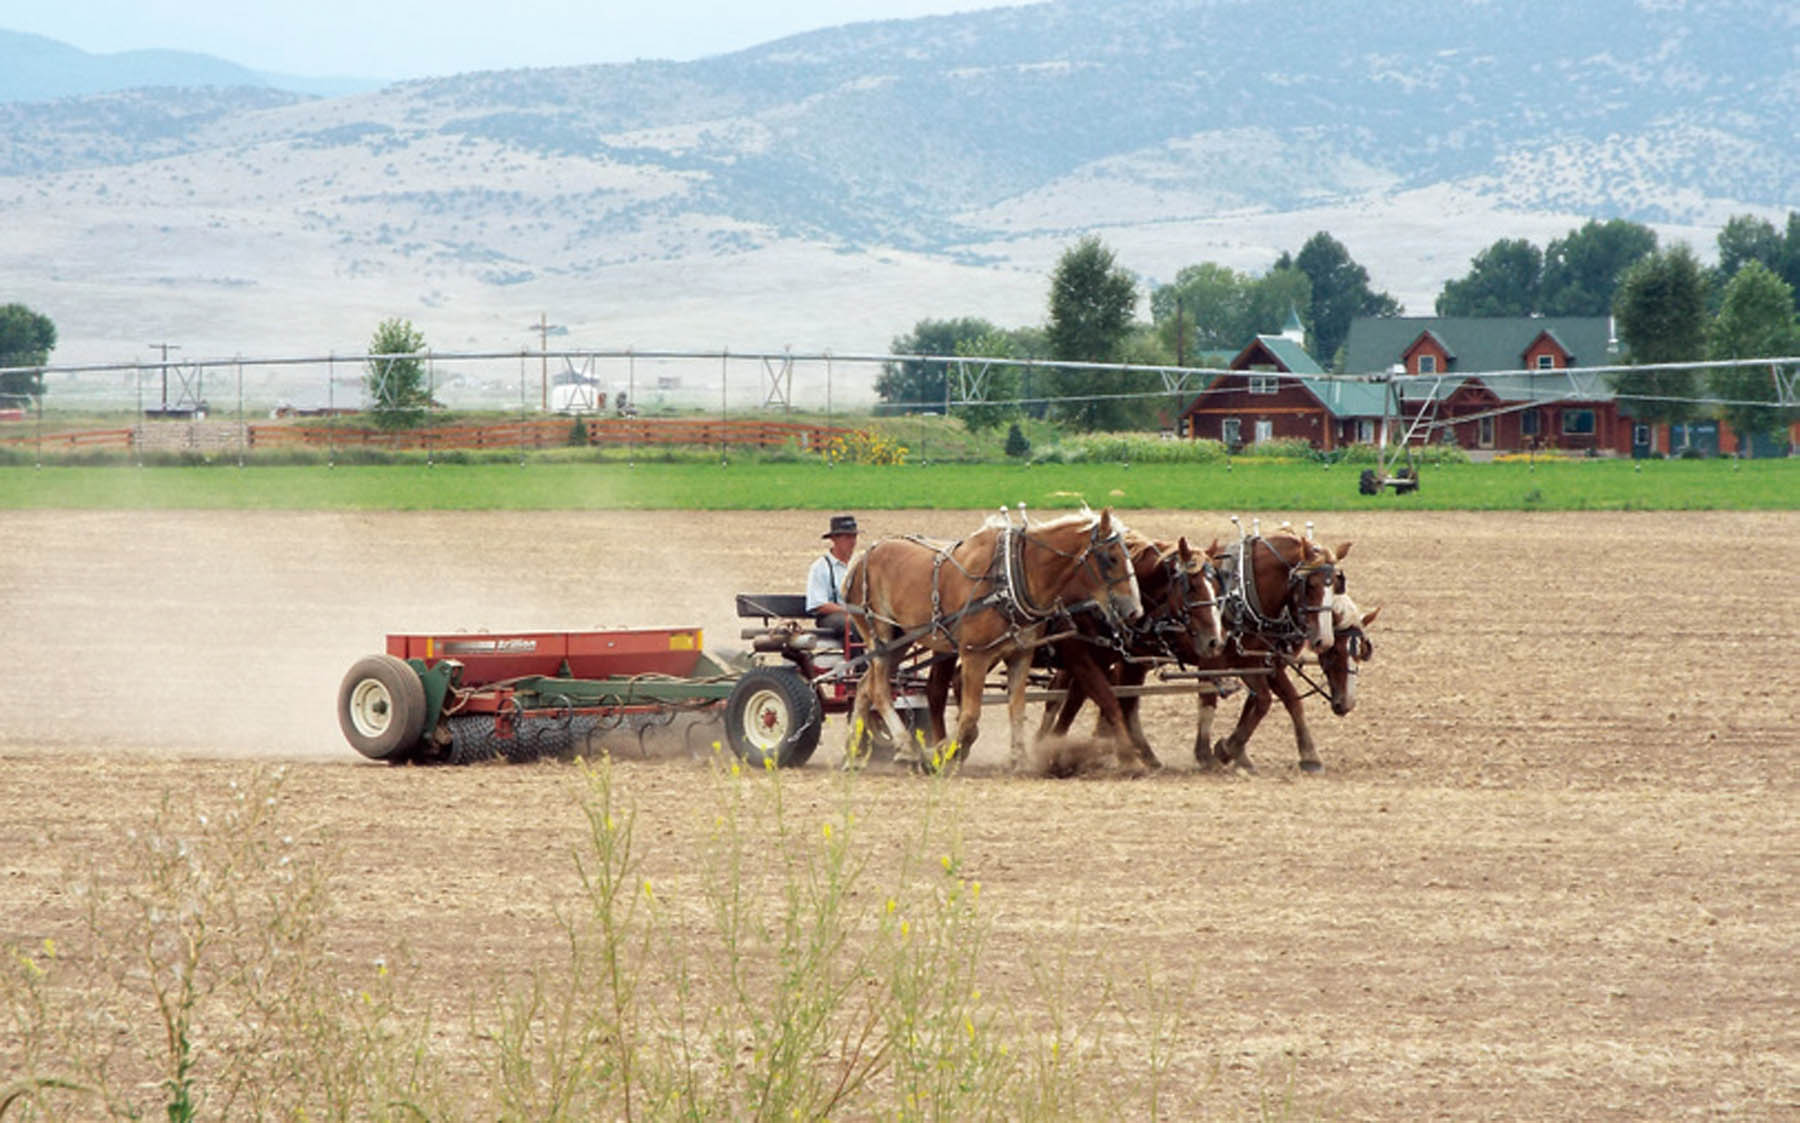 Old and New Methods of Agriculture in The San Luis Valley